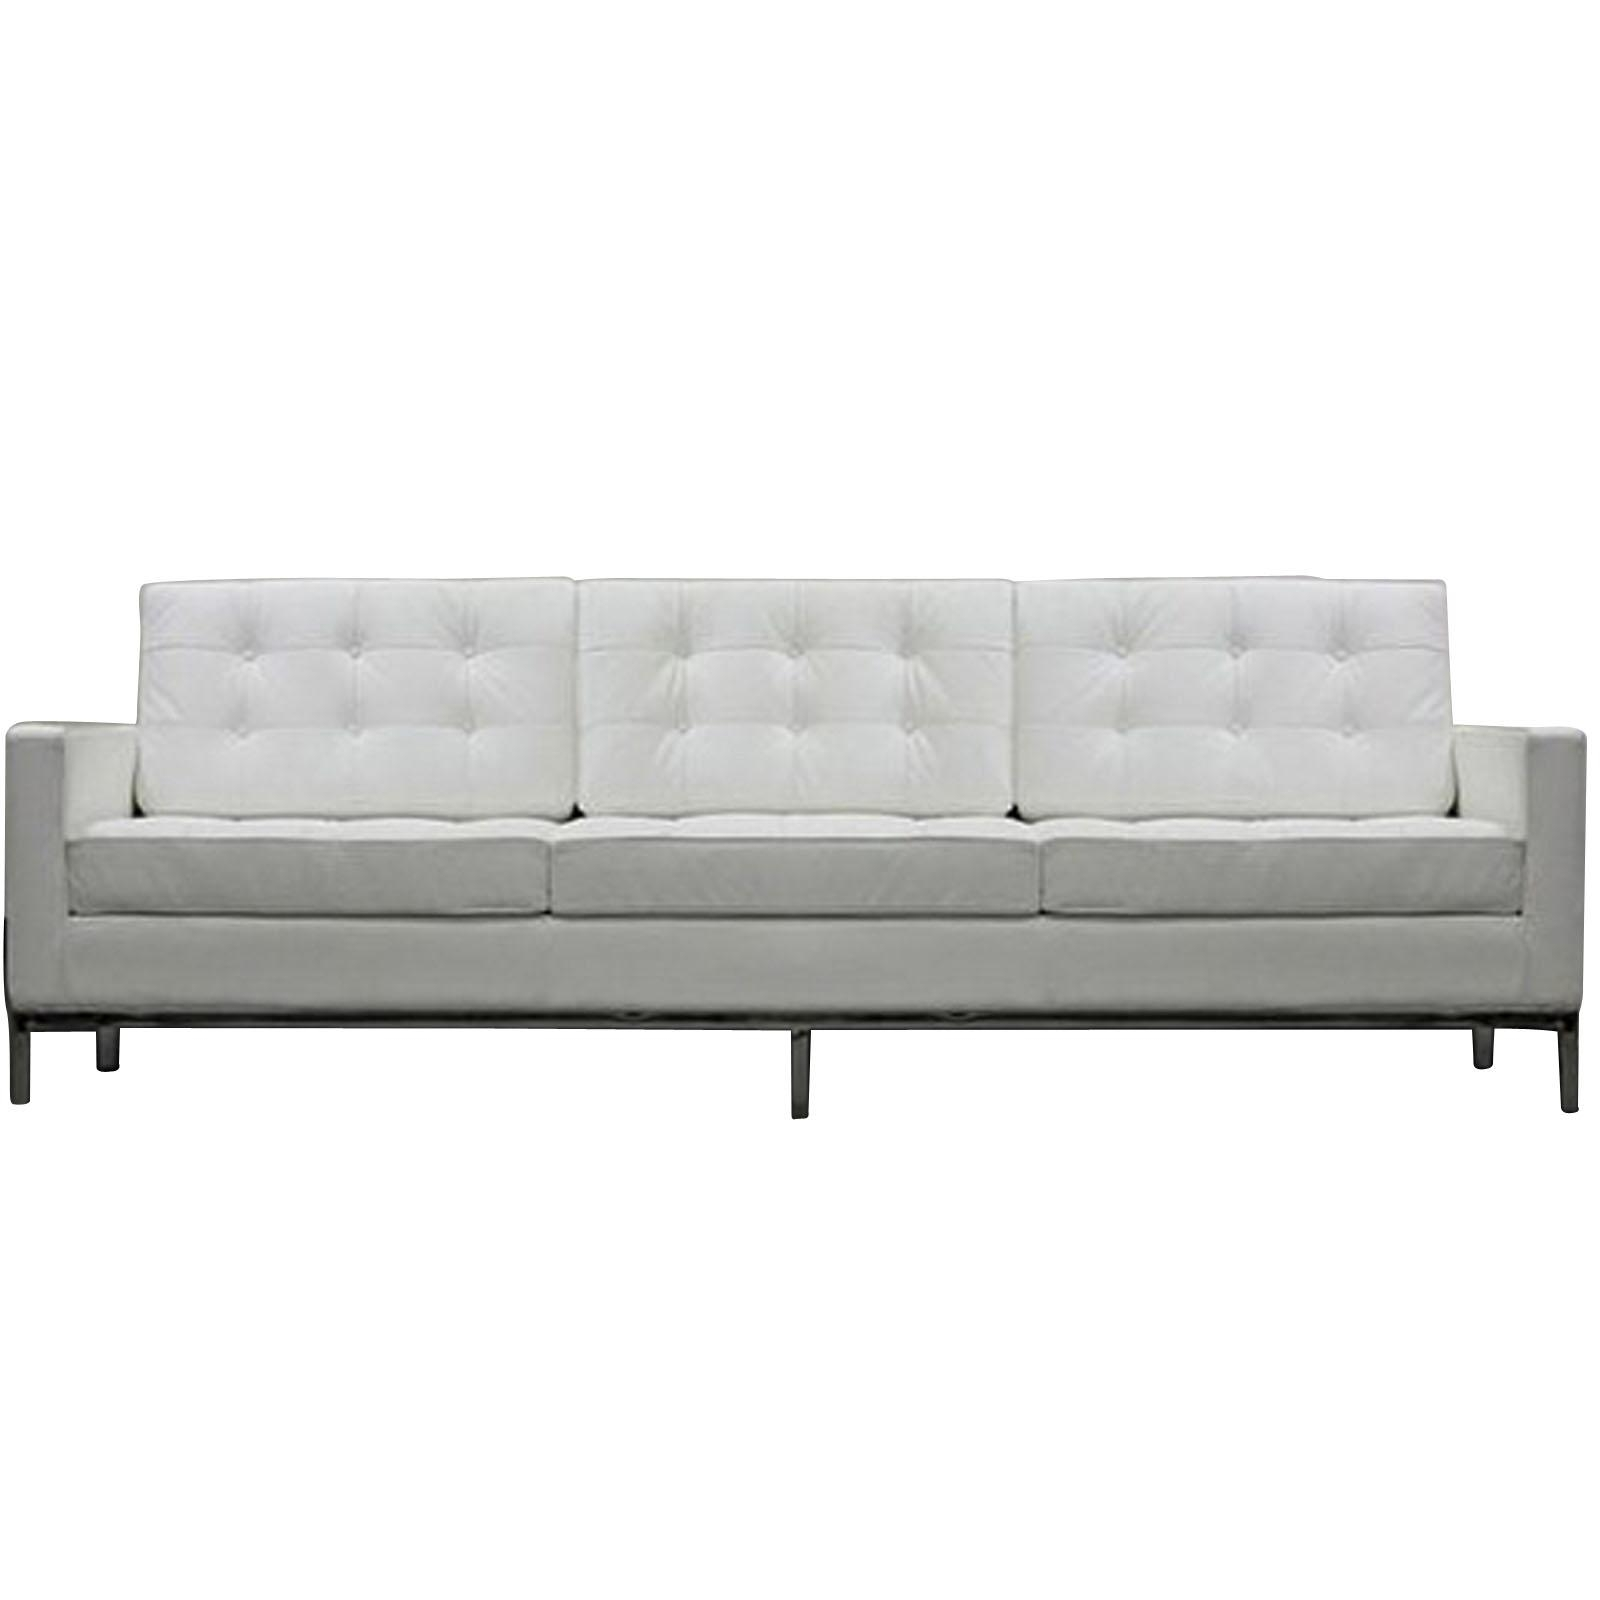 Florence Knoll Style Sofa Couch – Leather Pertaining To Florence Medium Sofas (View 9 of 20)